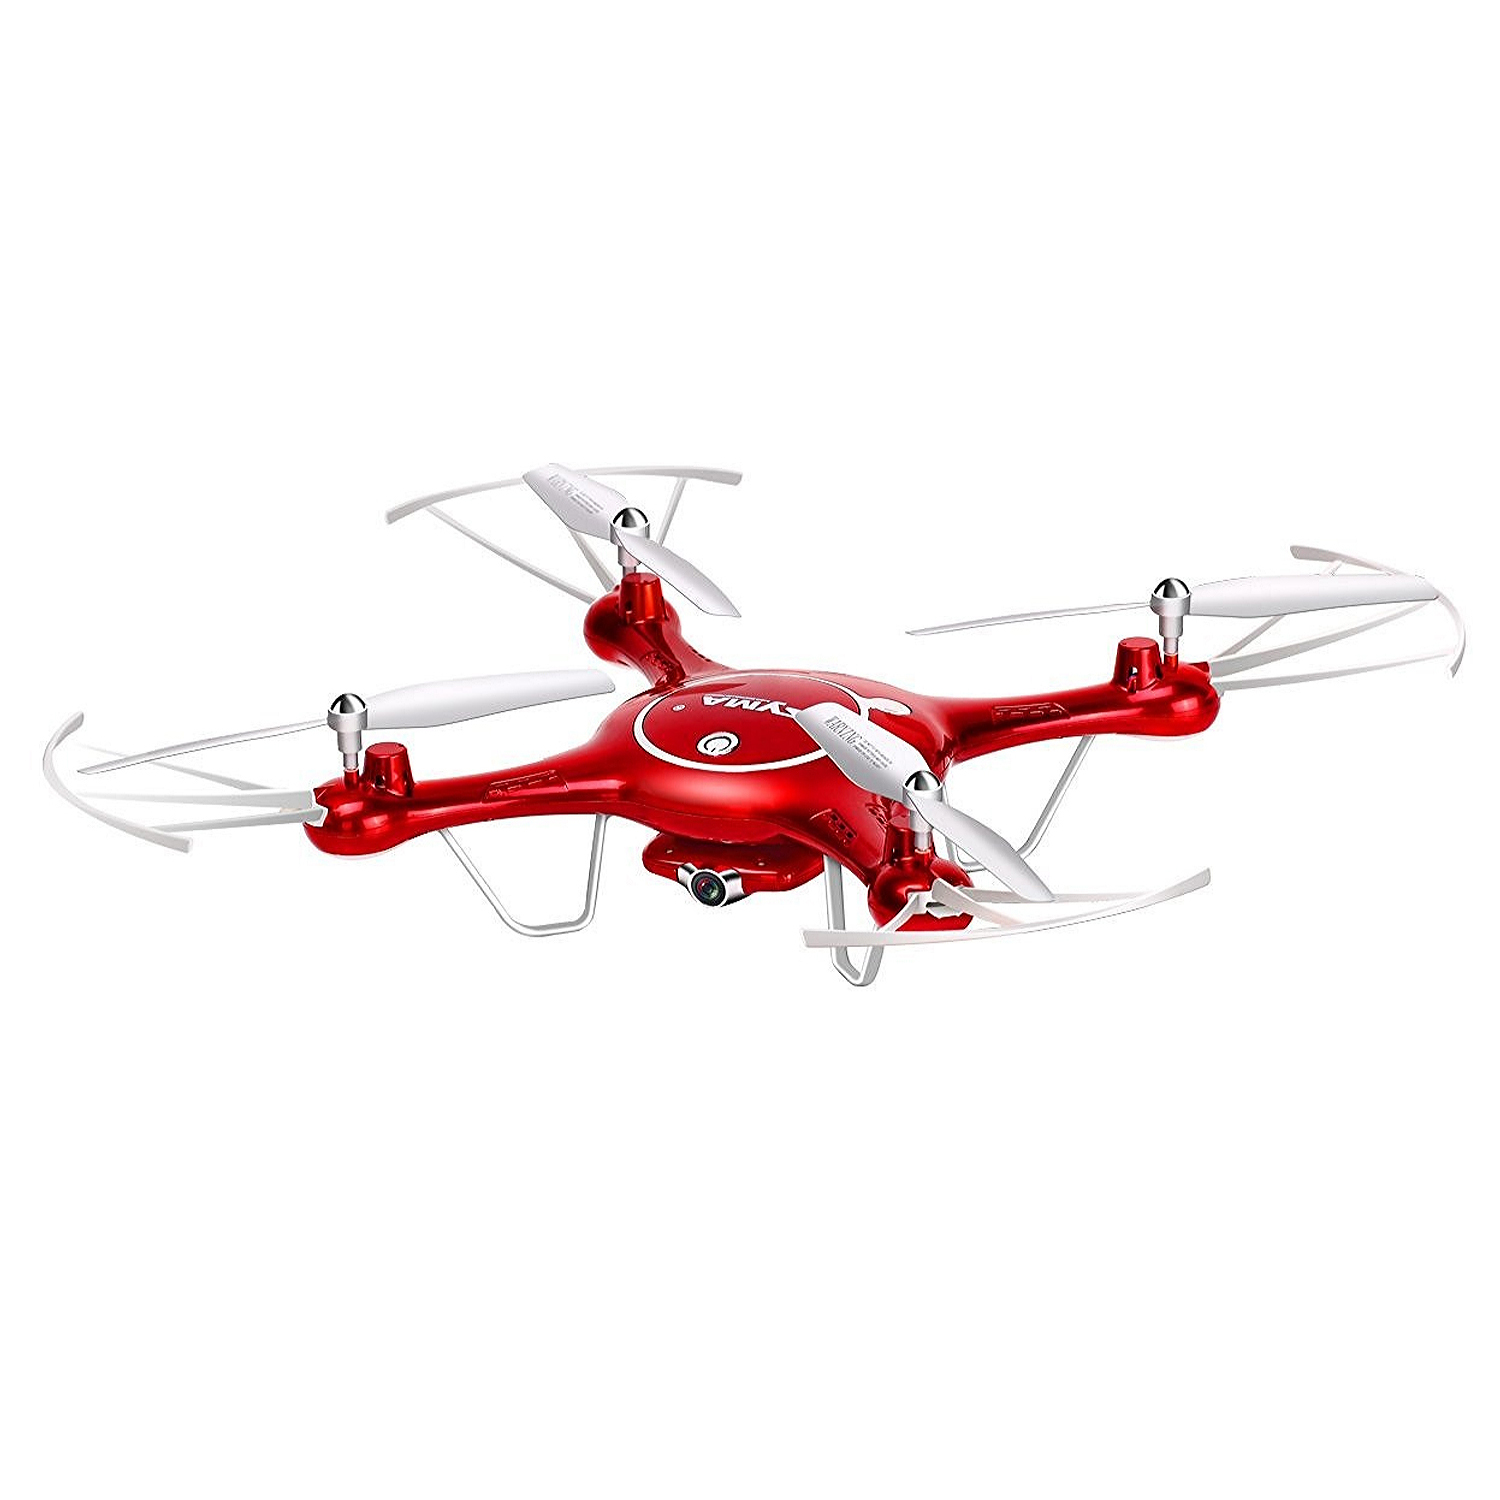 Syma X5UW WiFi FPV Quadcopter Drone with 720p Camera in Red or Blue